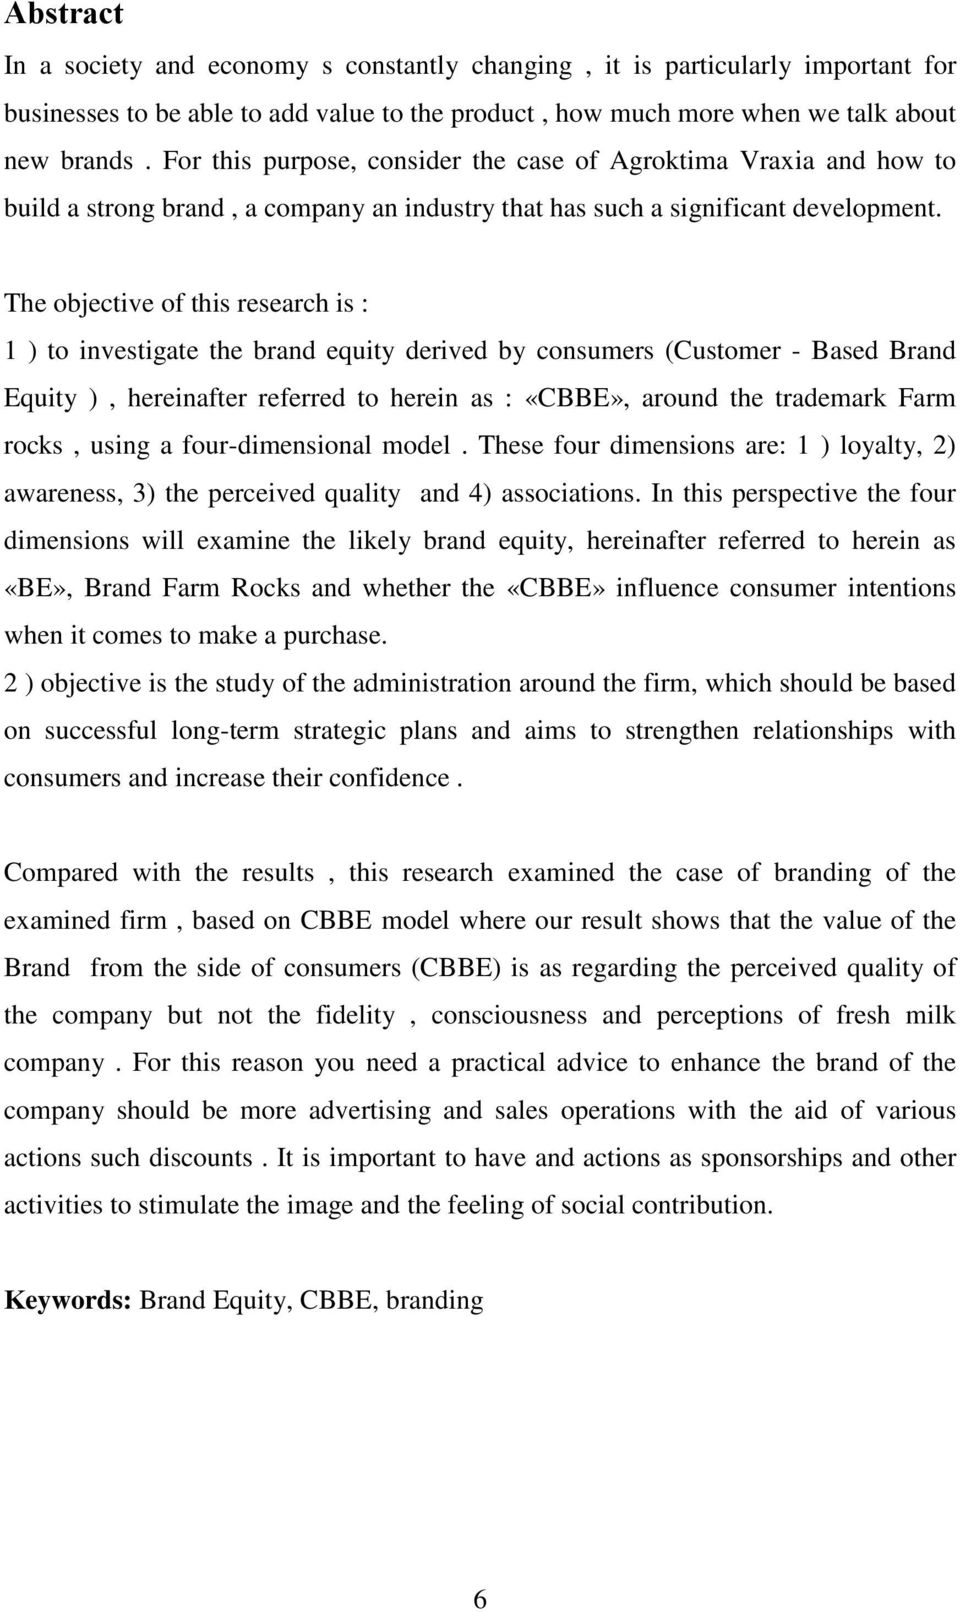 The objective of this research is : 1 ) to investigate the brand equity derived by consumers (Customer - Based Brand Equity ), hereinafter referred to herein as : «CBBE», around the trademark Farm